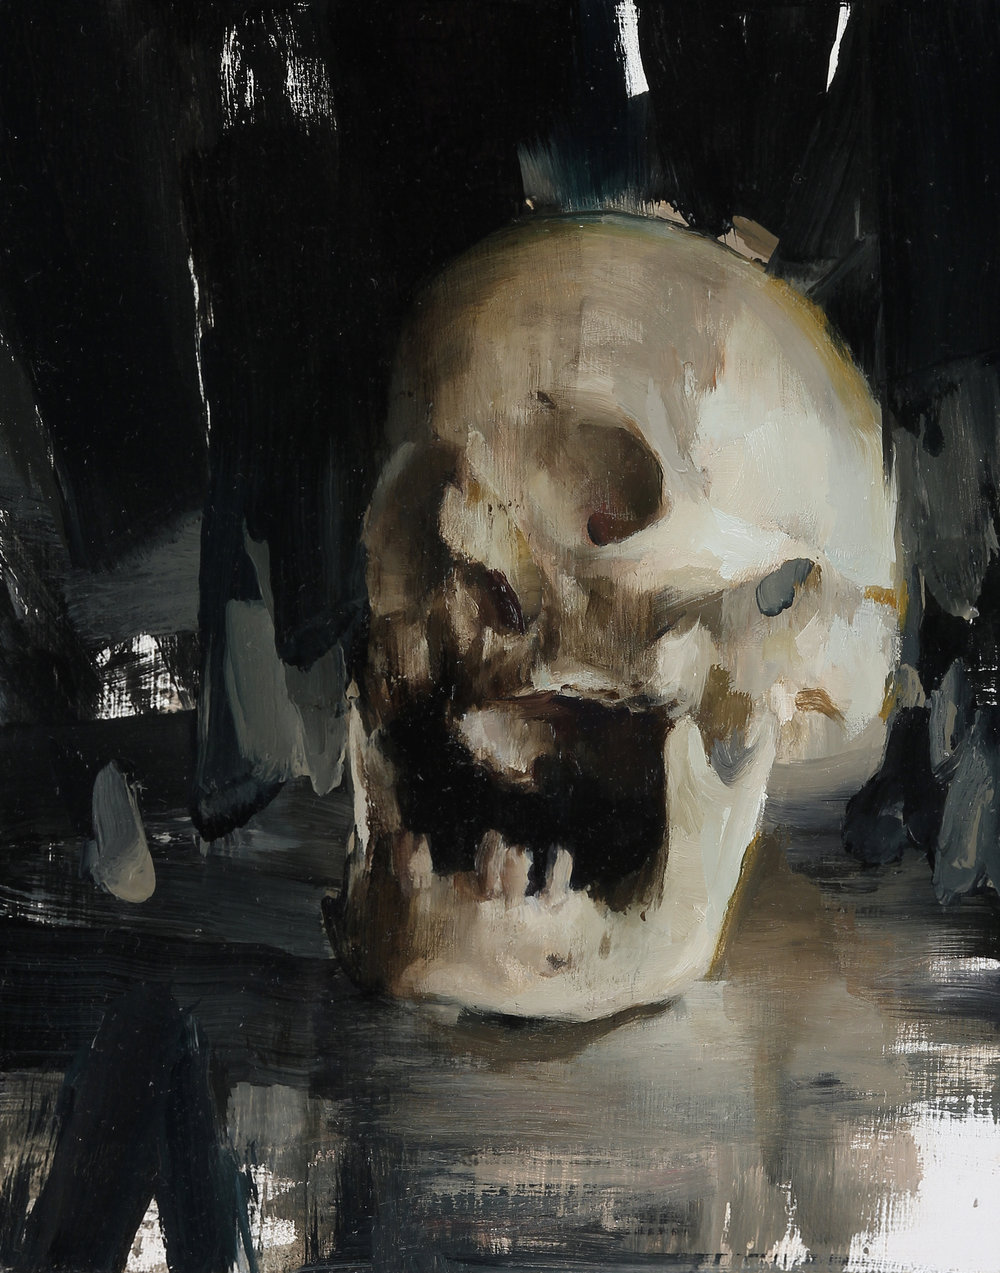 Memento Mori Skull, 10 X 8 inches, oil on panel